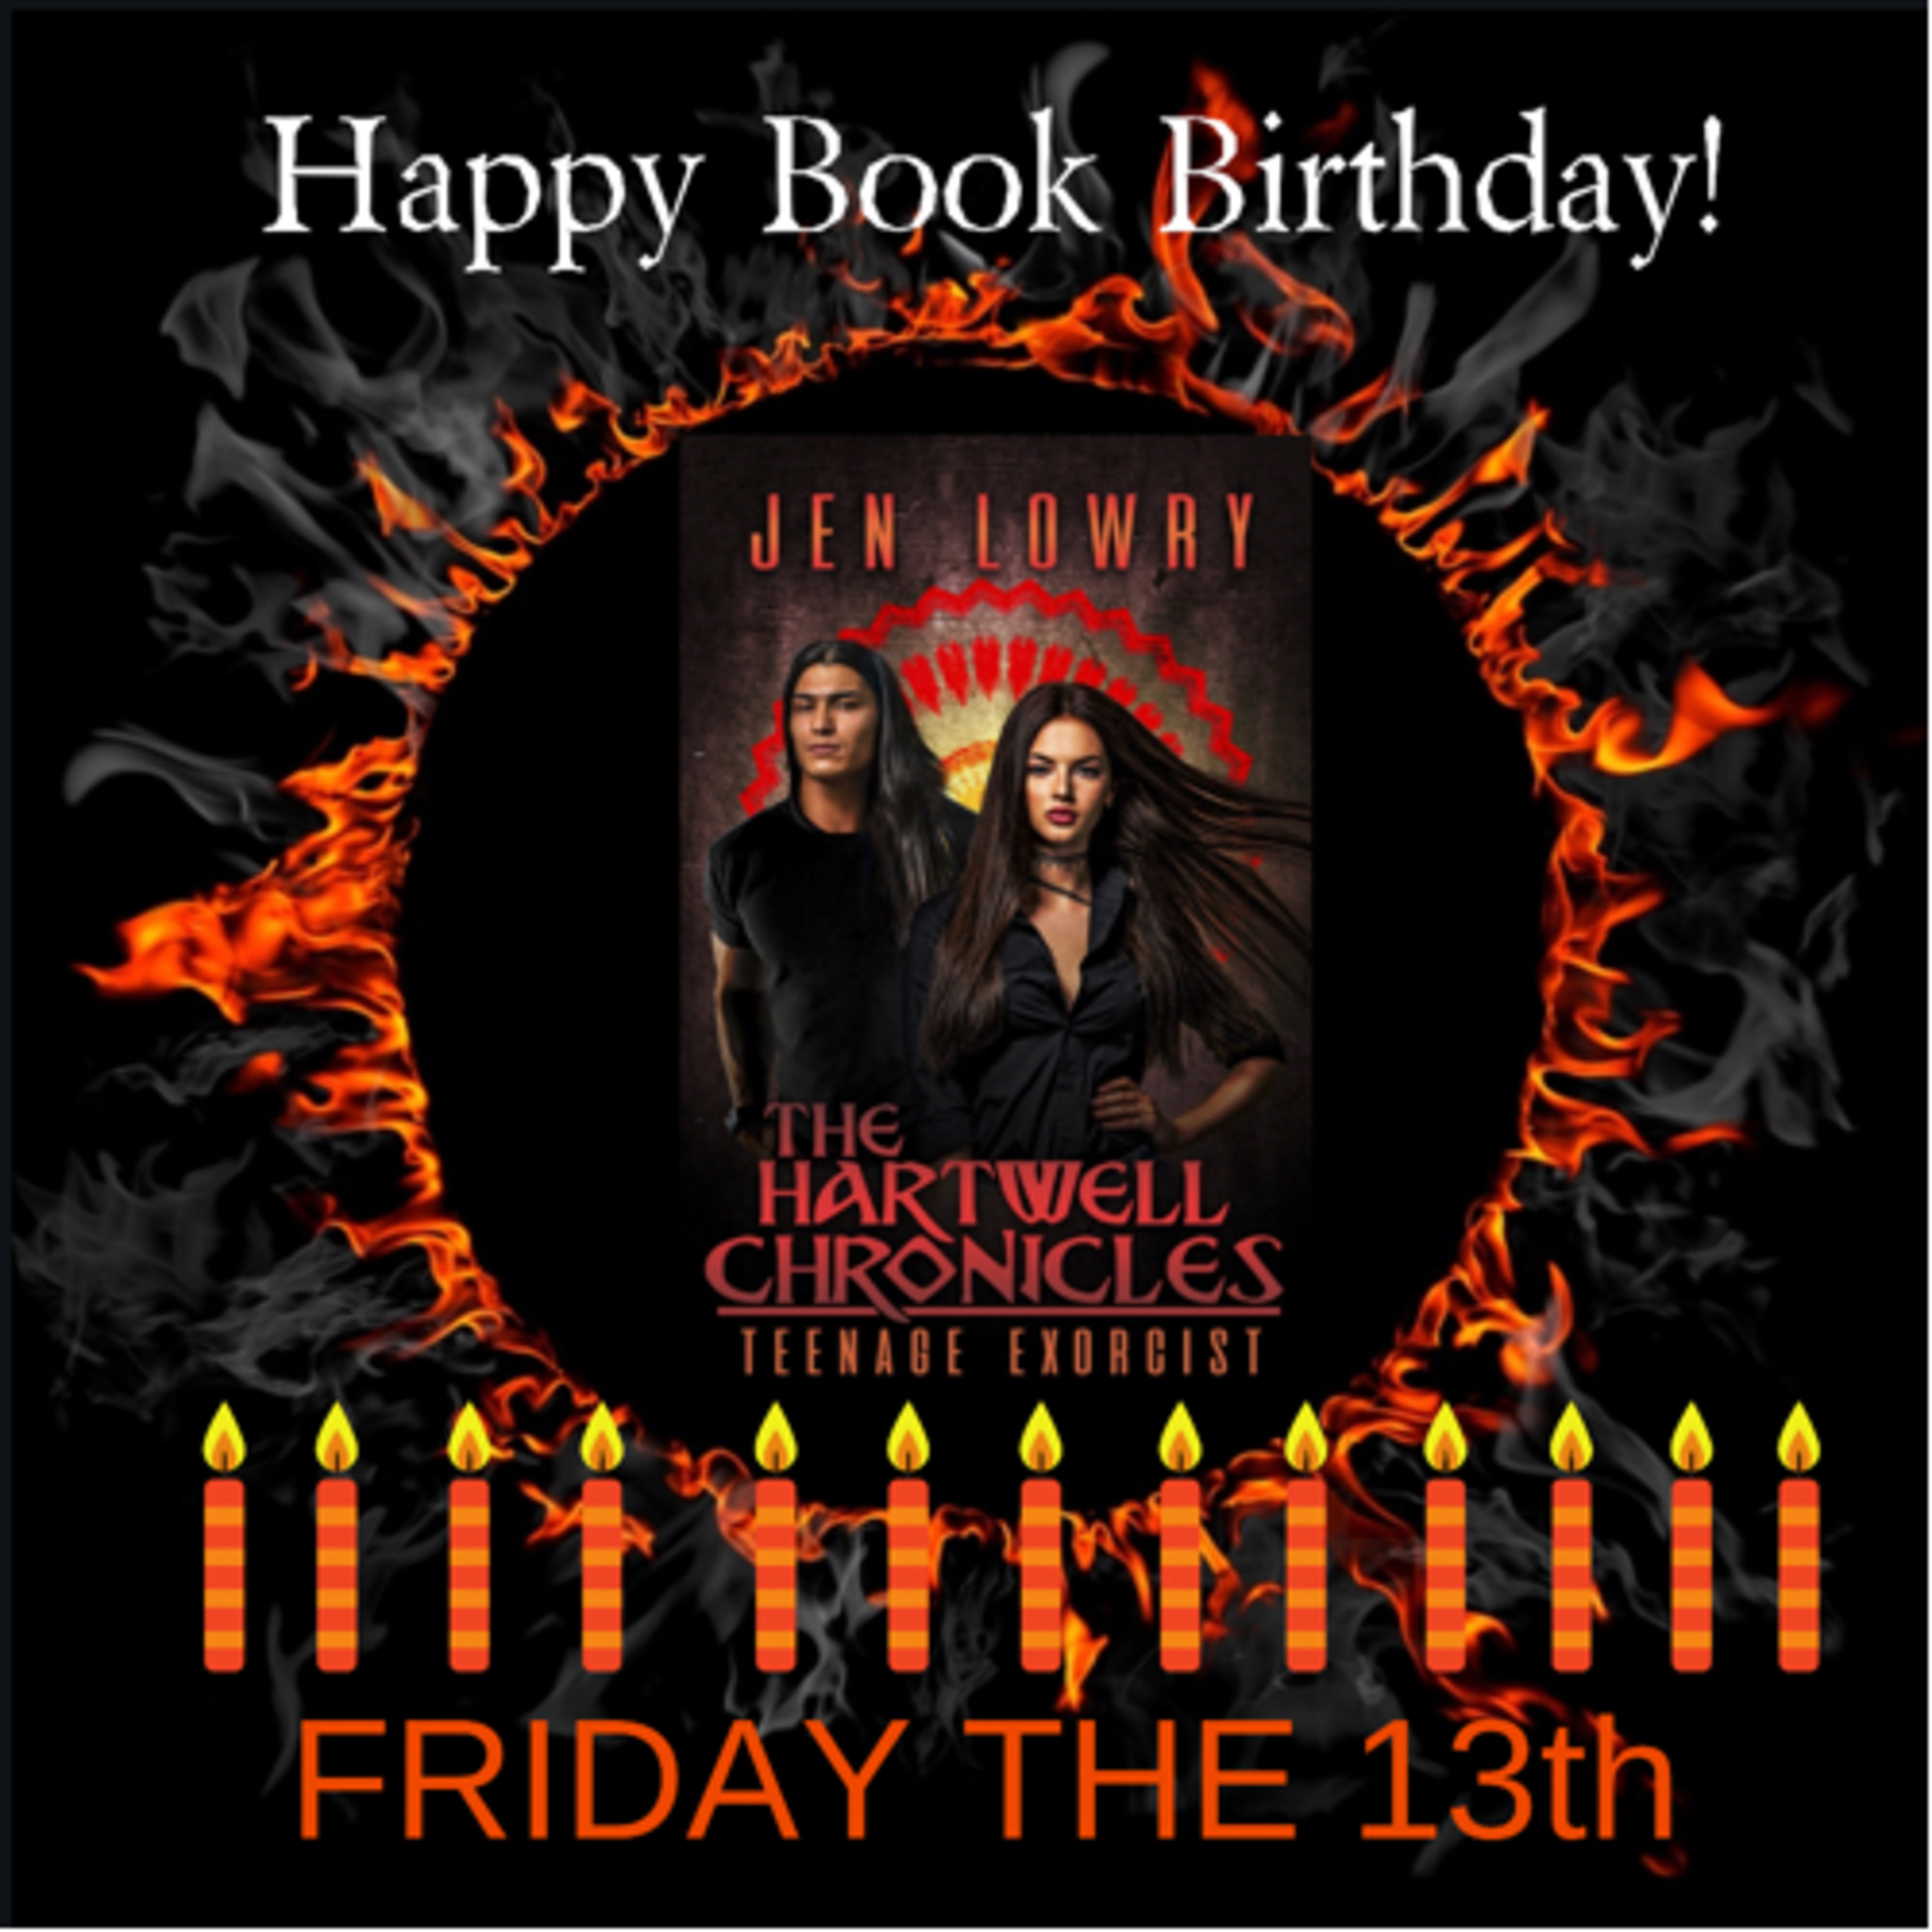 Book Birthday - The Hartwell Chronicles Teenage Exorcist